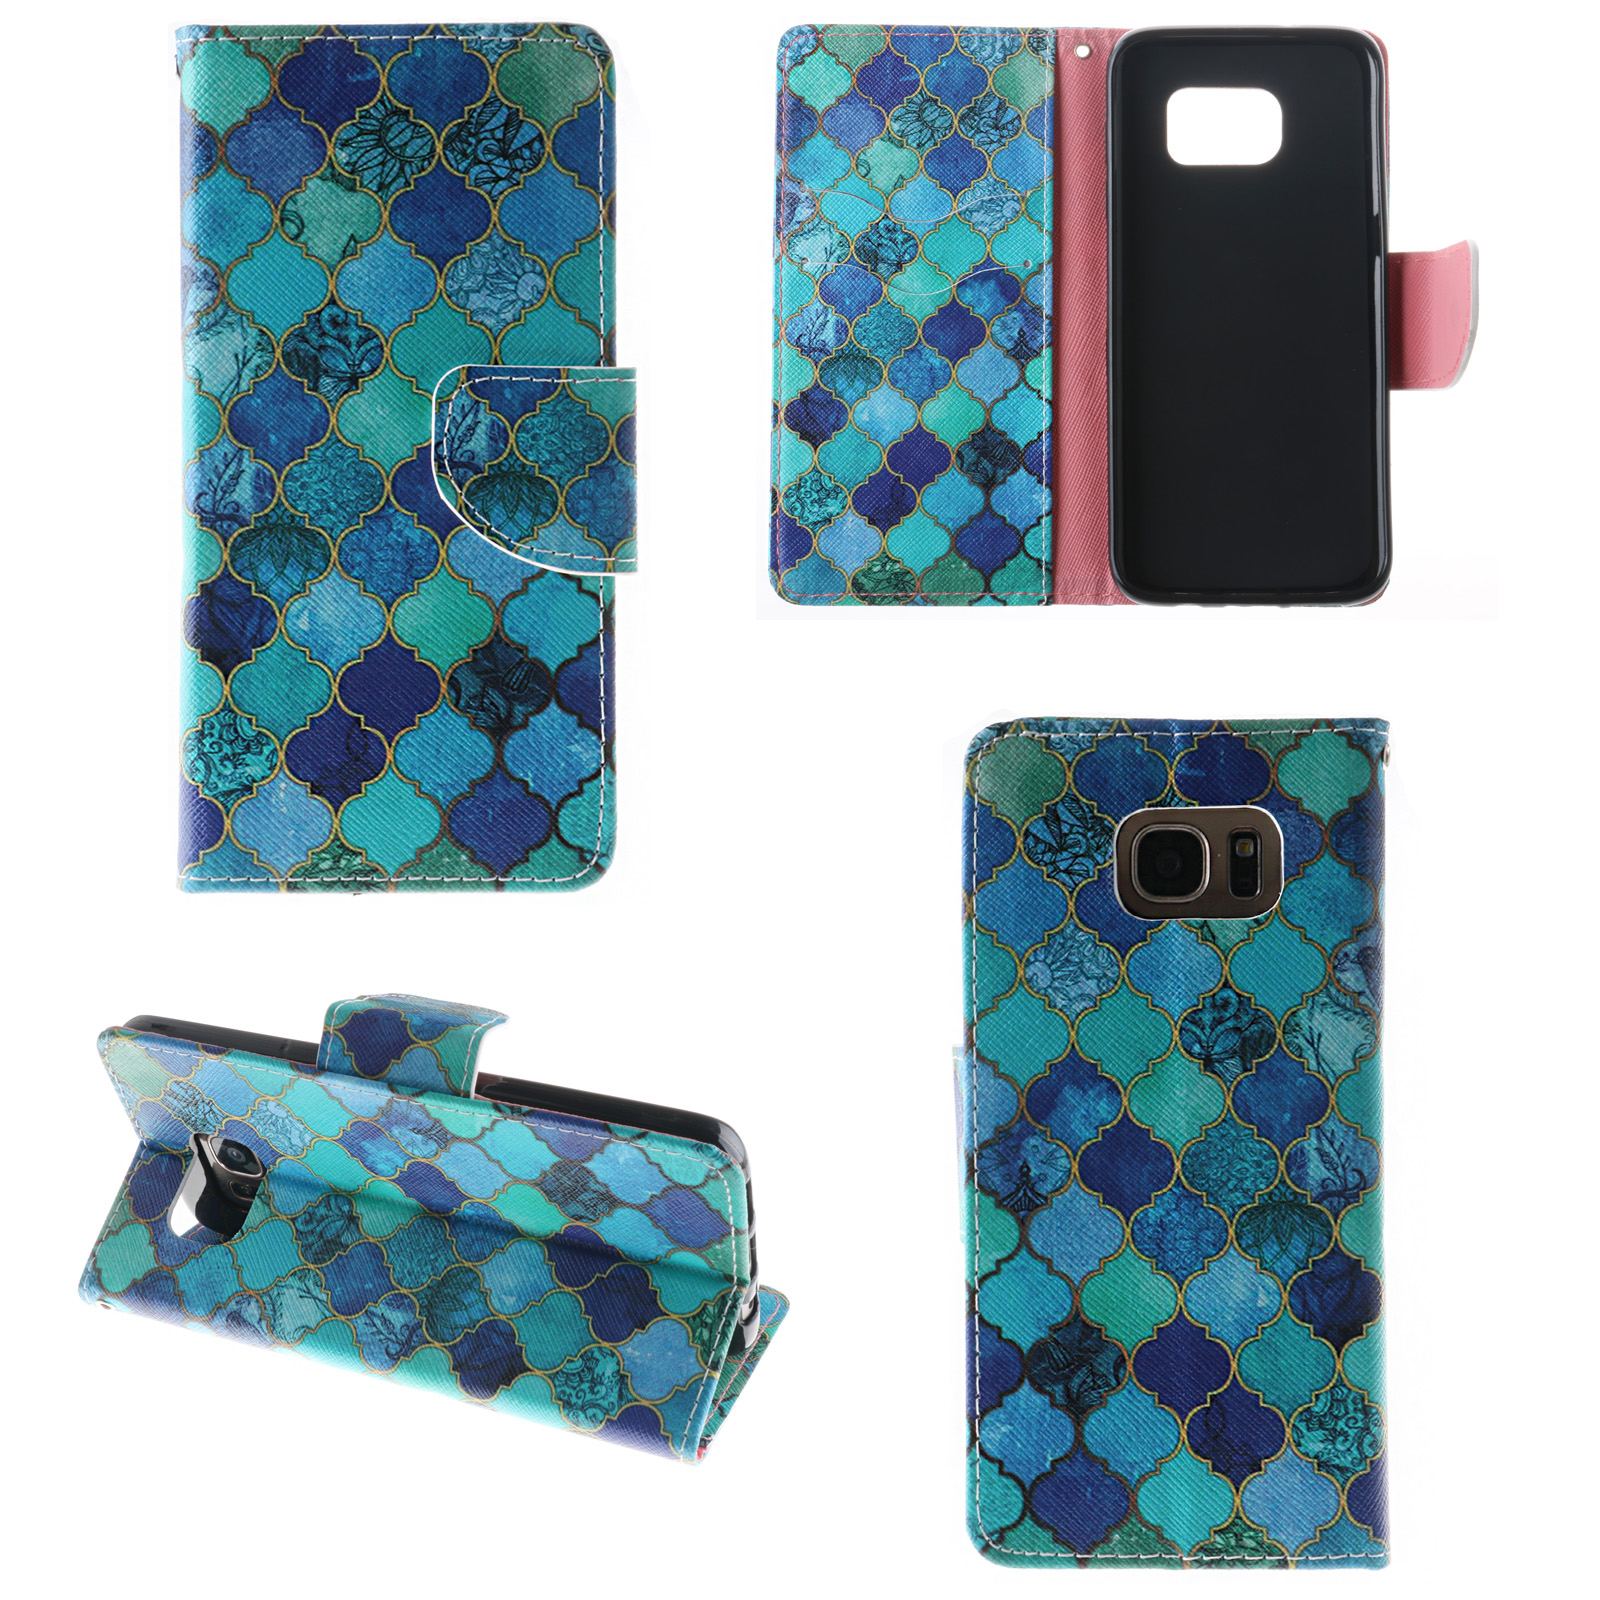 Pattern Leather Wallet Case Cover For Samsung Galaxy Grand